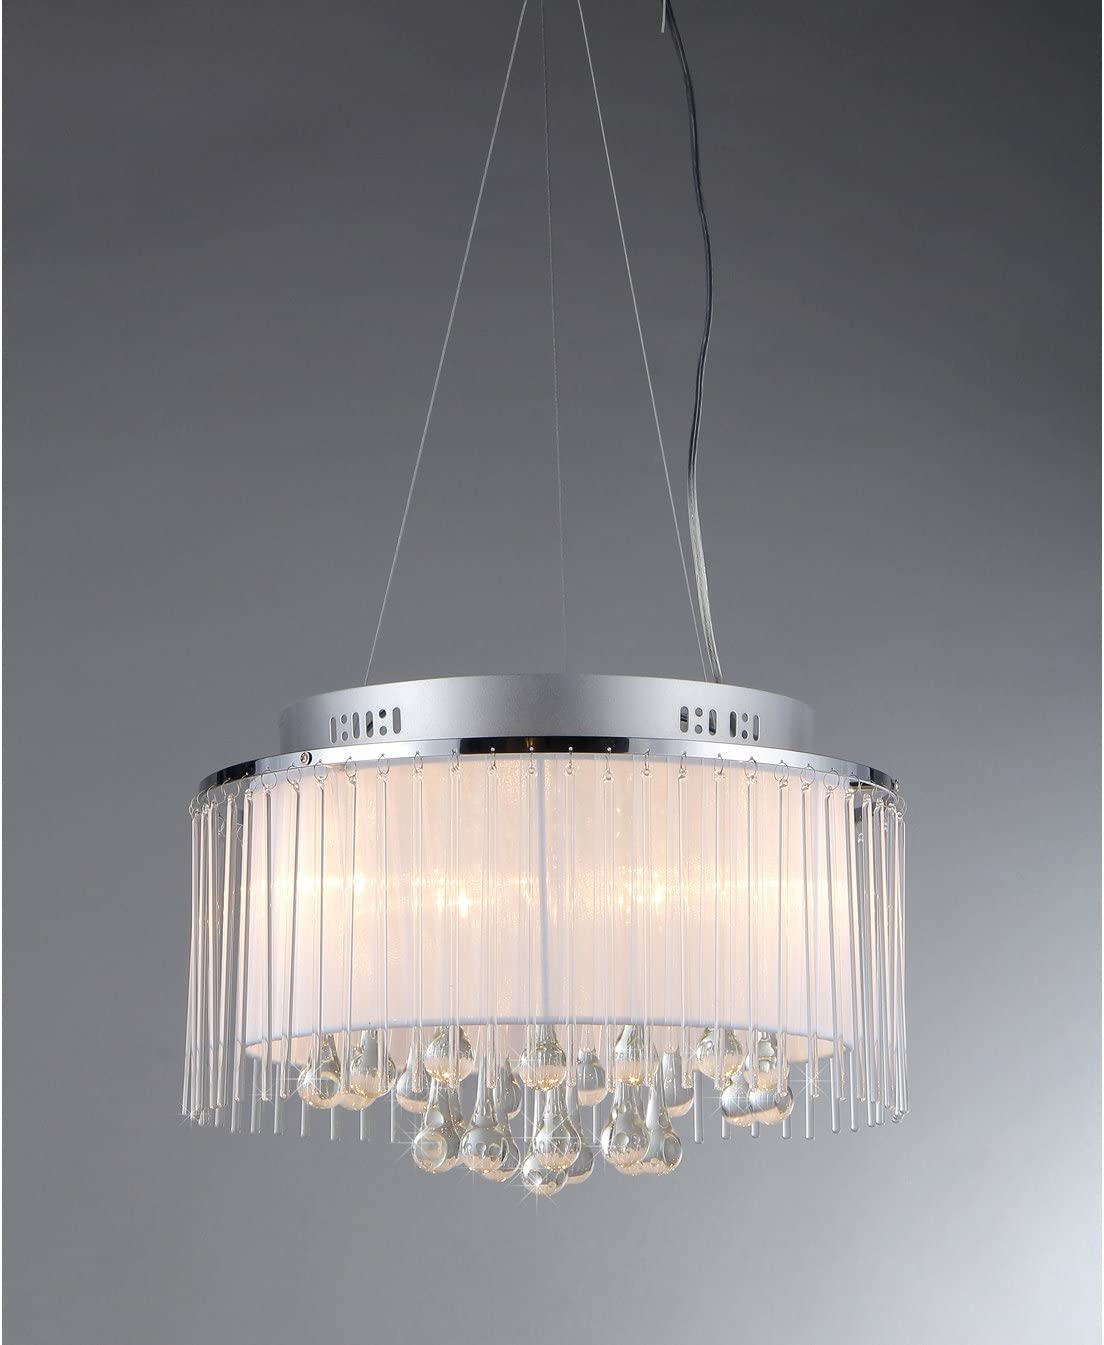 Whse of Tiffany RL7904-6 Ares Chrome Five-Light Chandelier